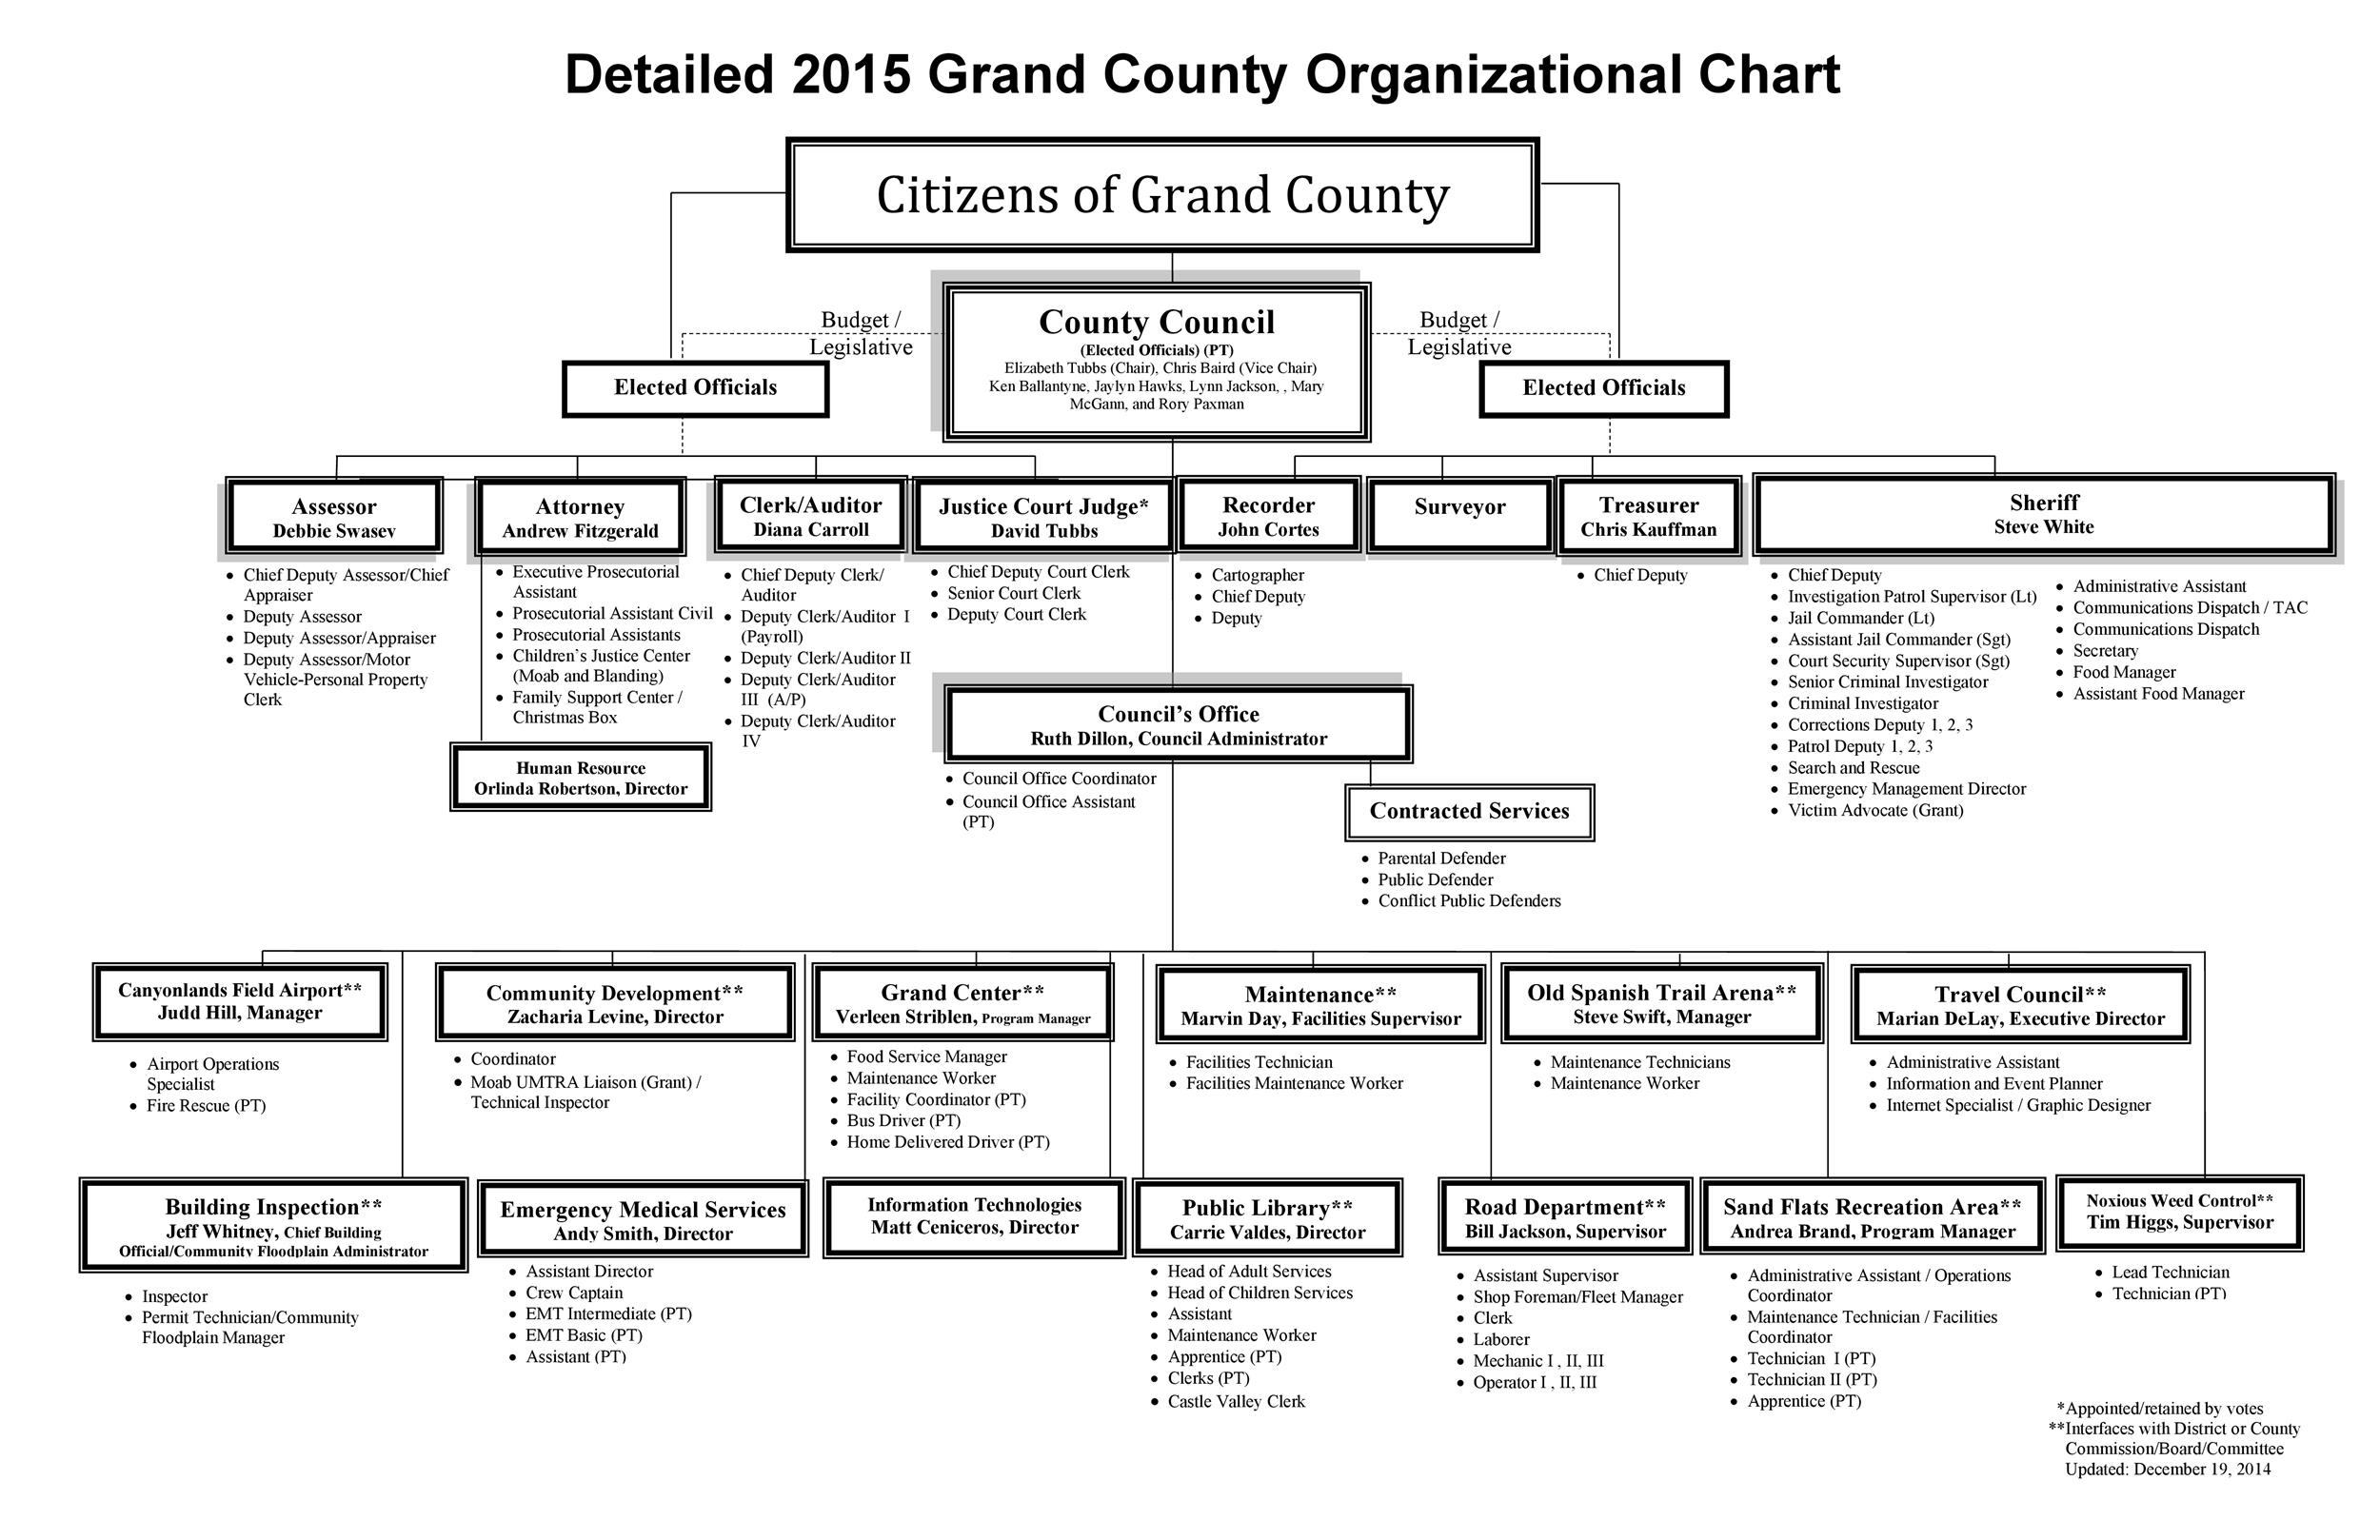 How do you find a sample organization chart